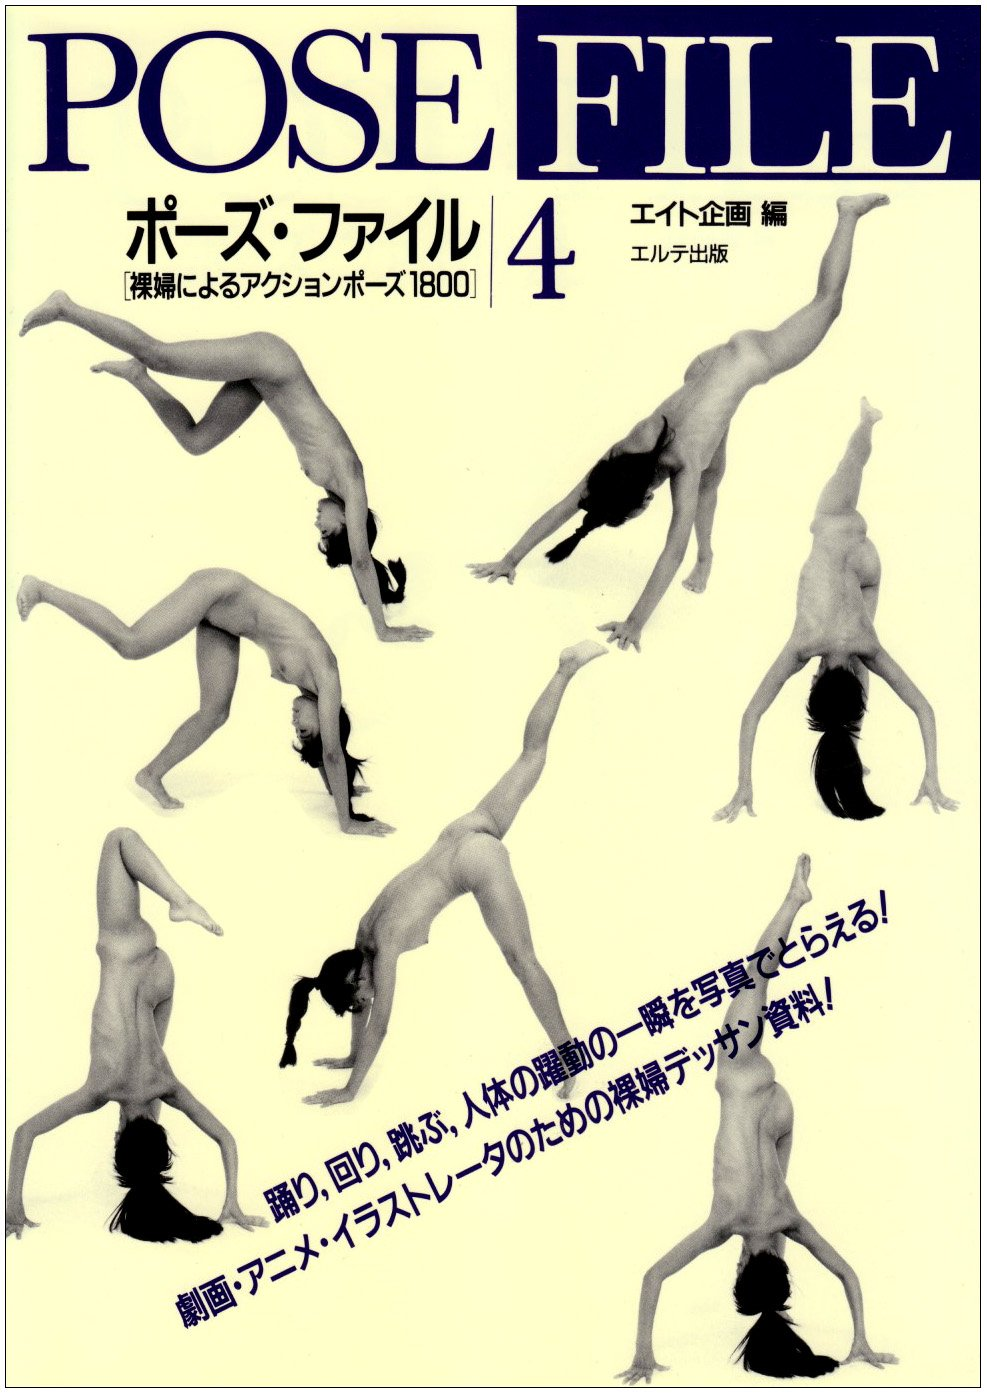 Pose File 4: Dance Action (Pose File, Vol 4)